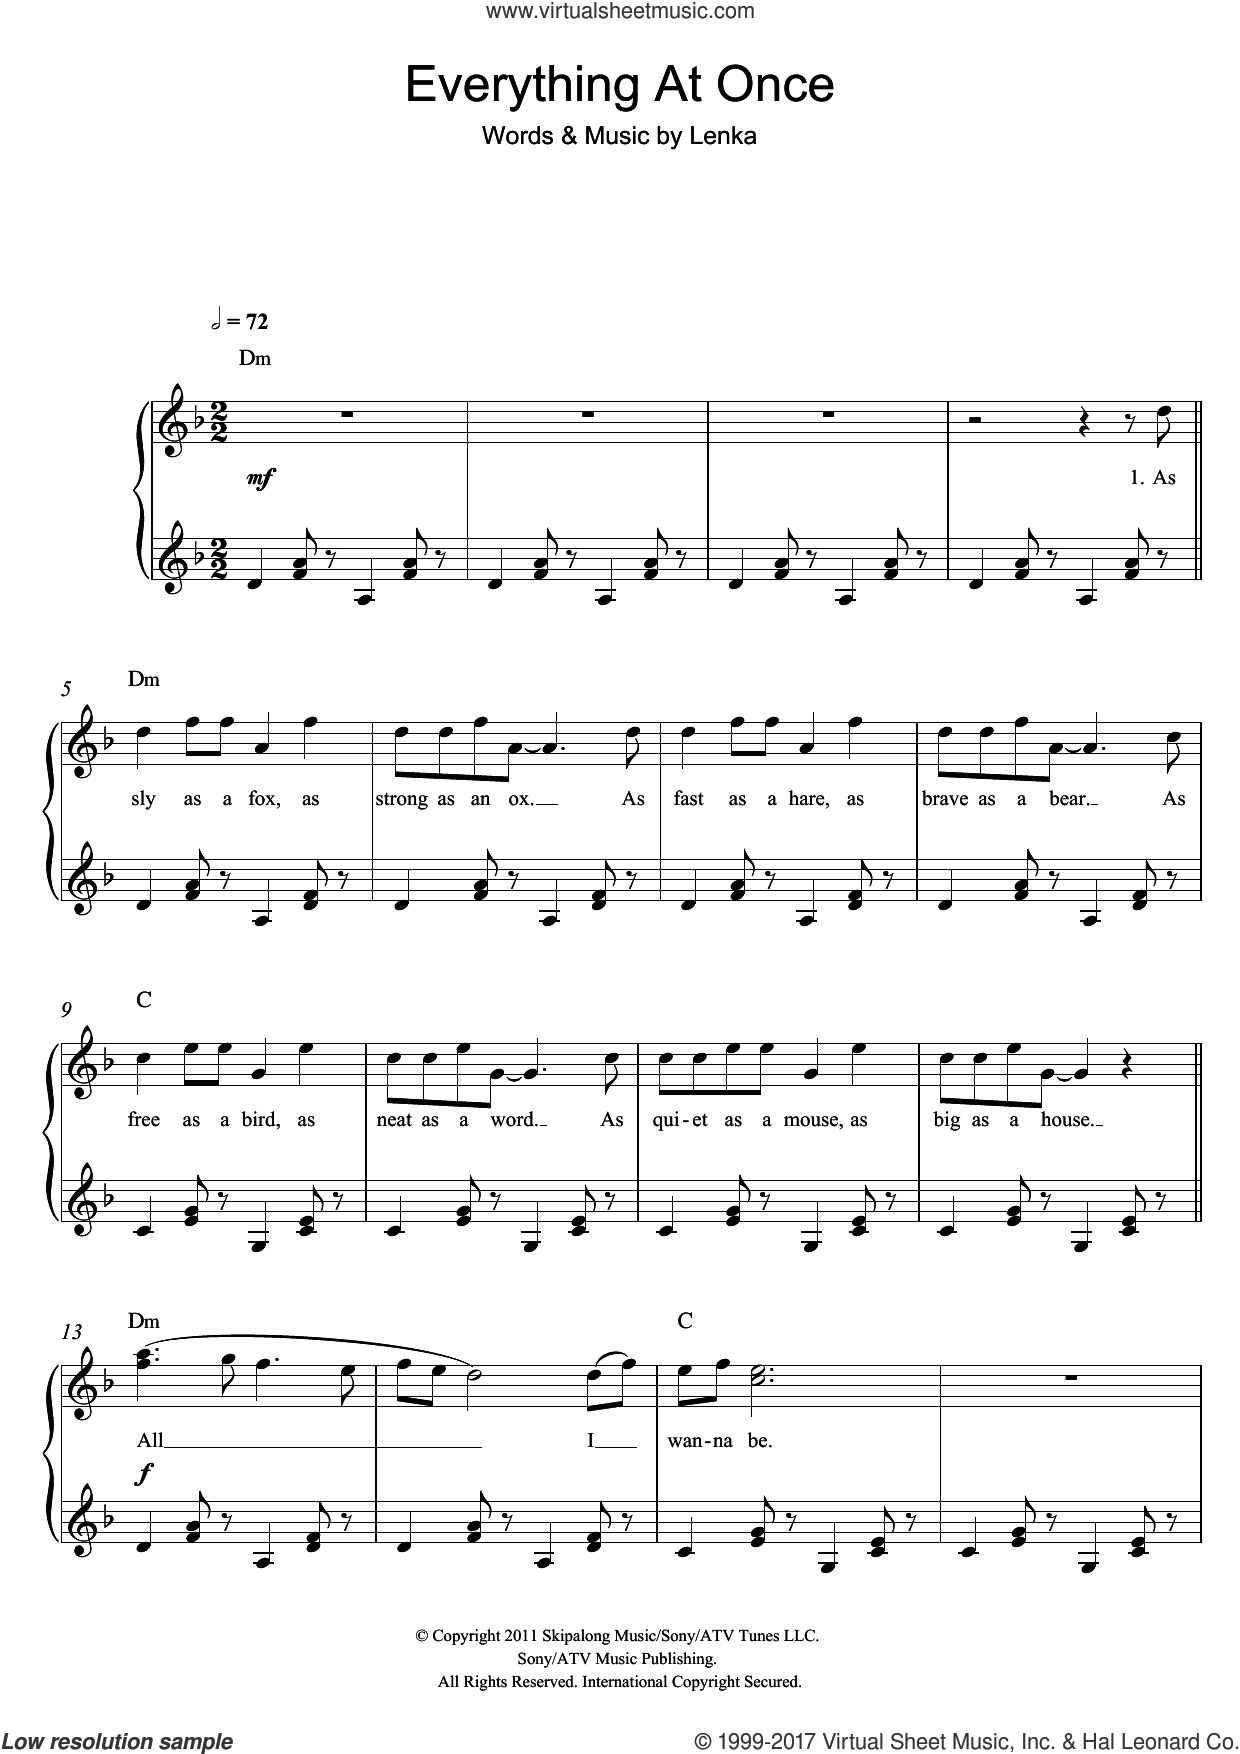 Everything At Once sheet music for piano solo by Lenka, easy skill level